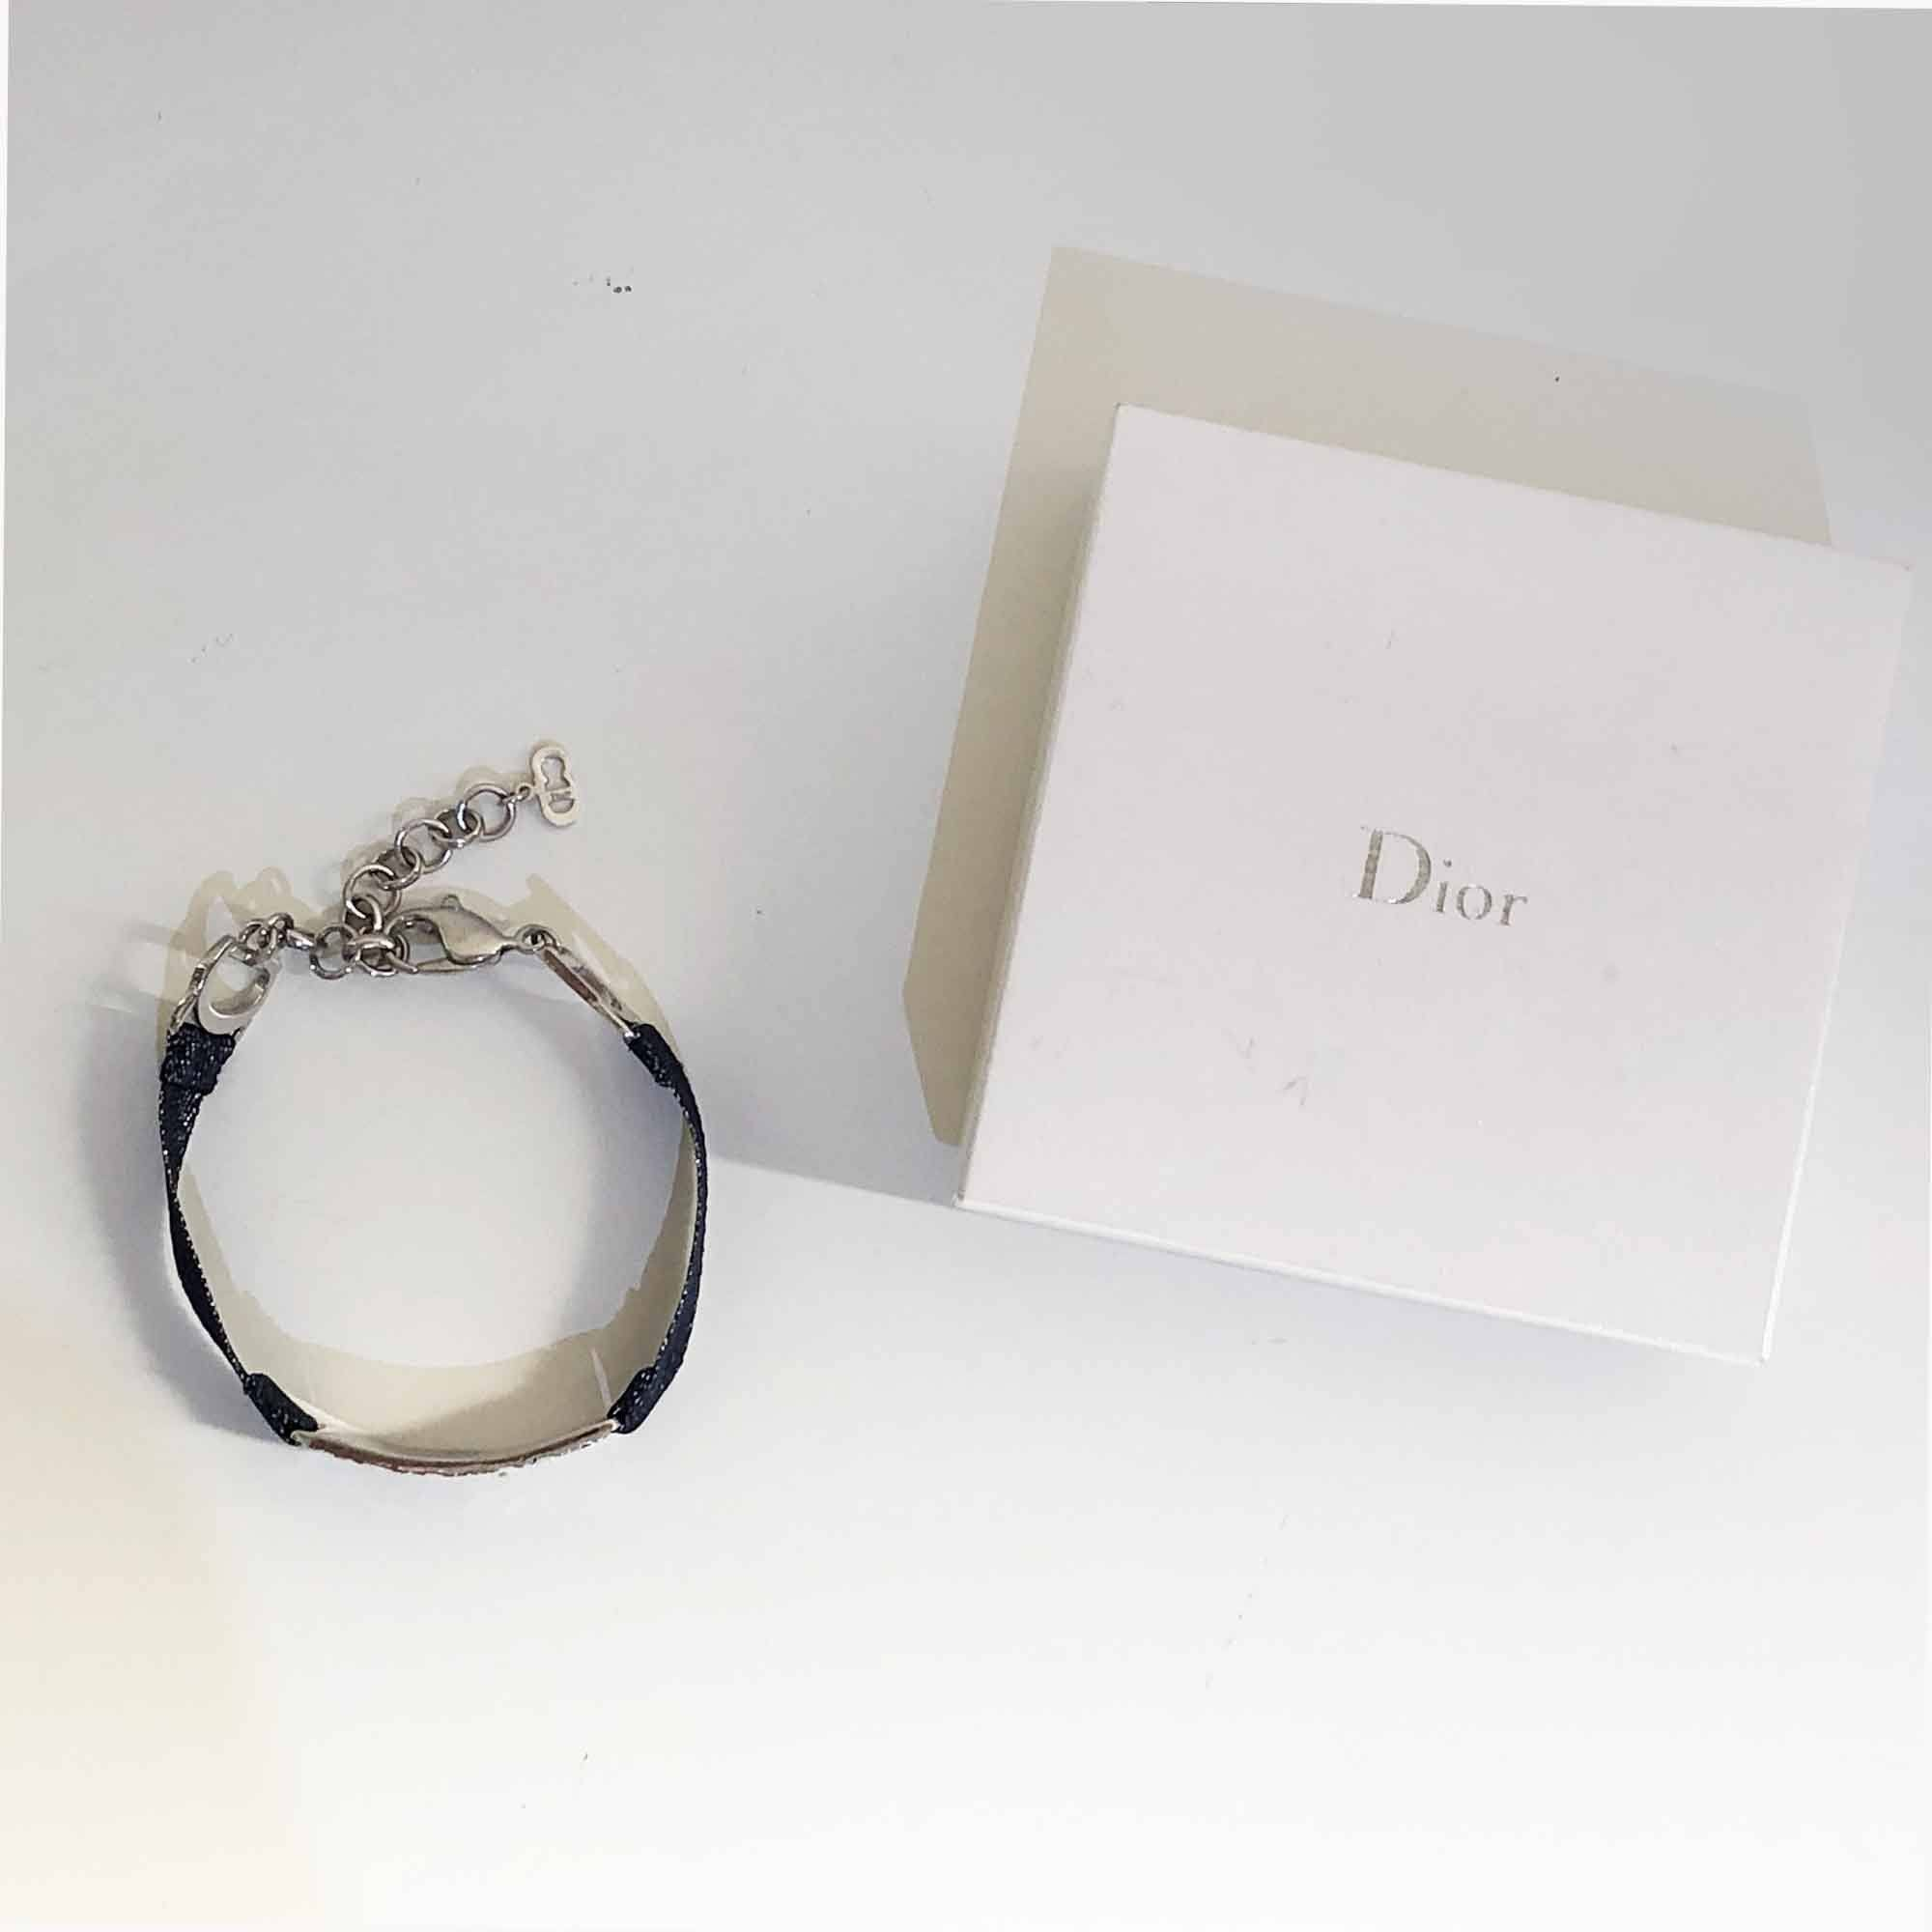 Christian Dior Fabric and Chain Bracelet